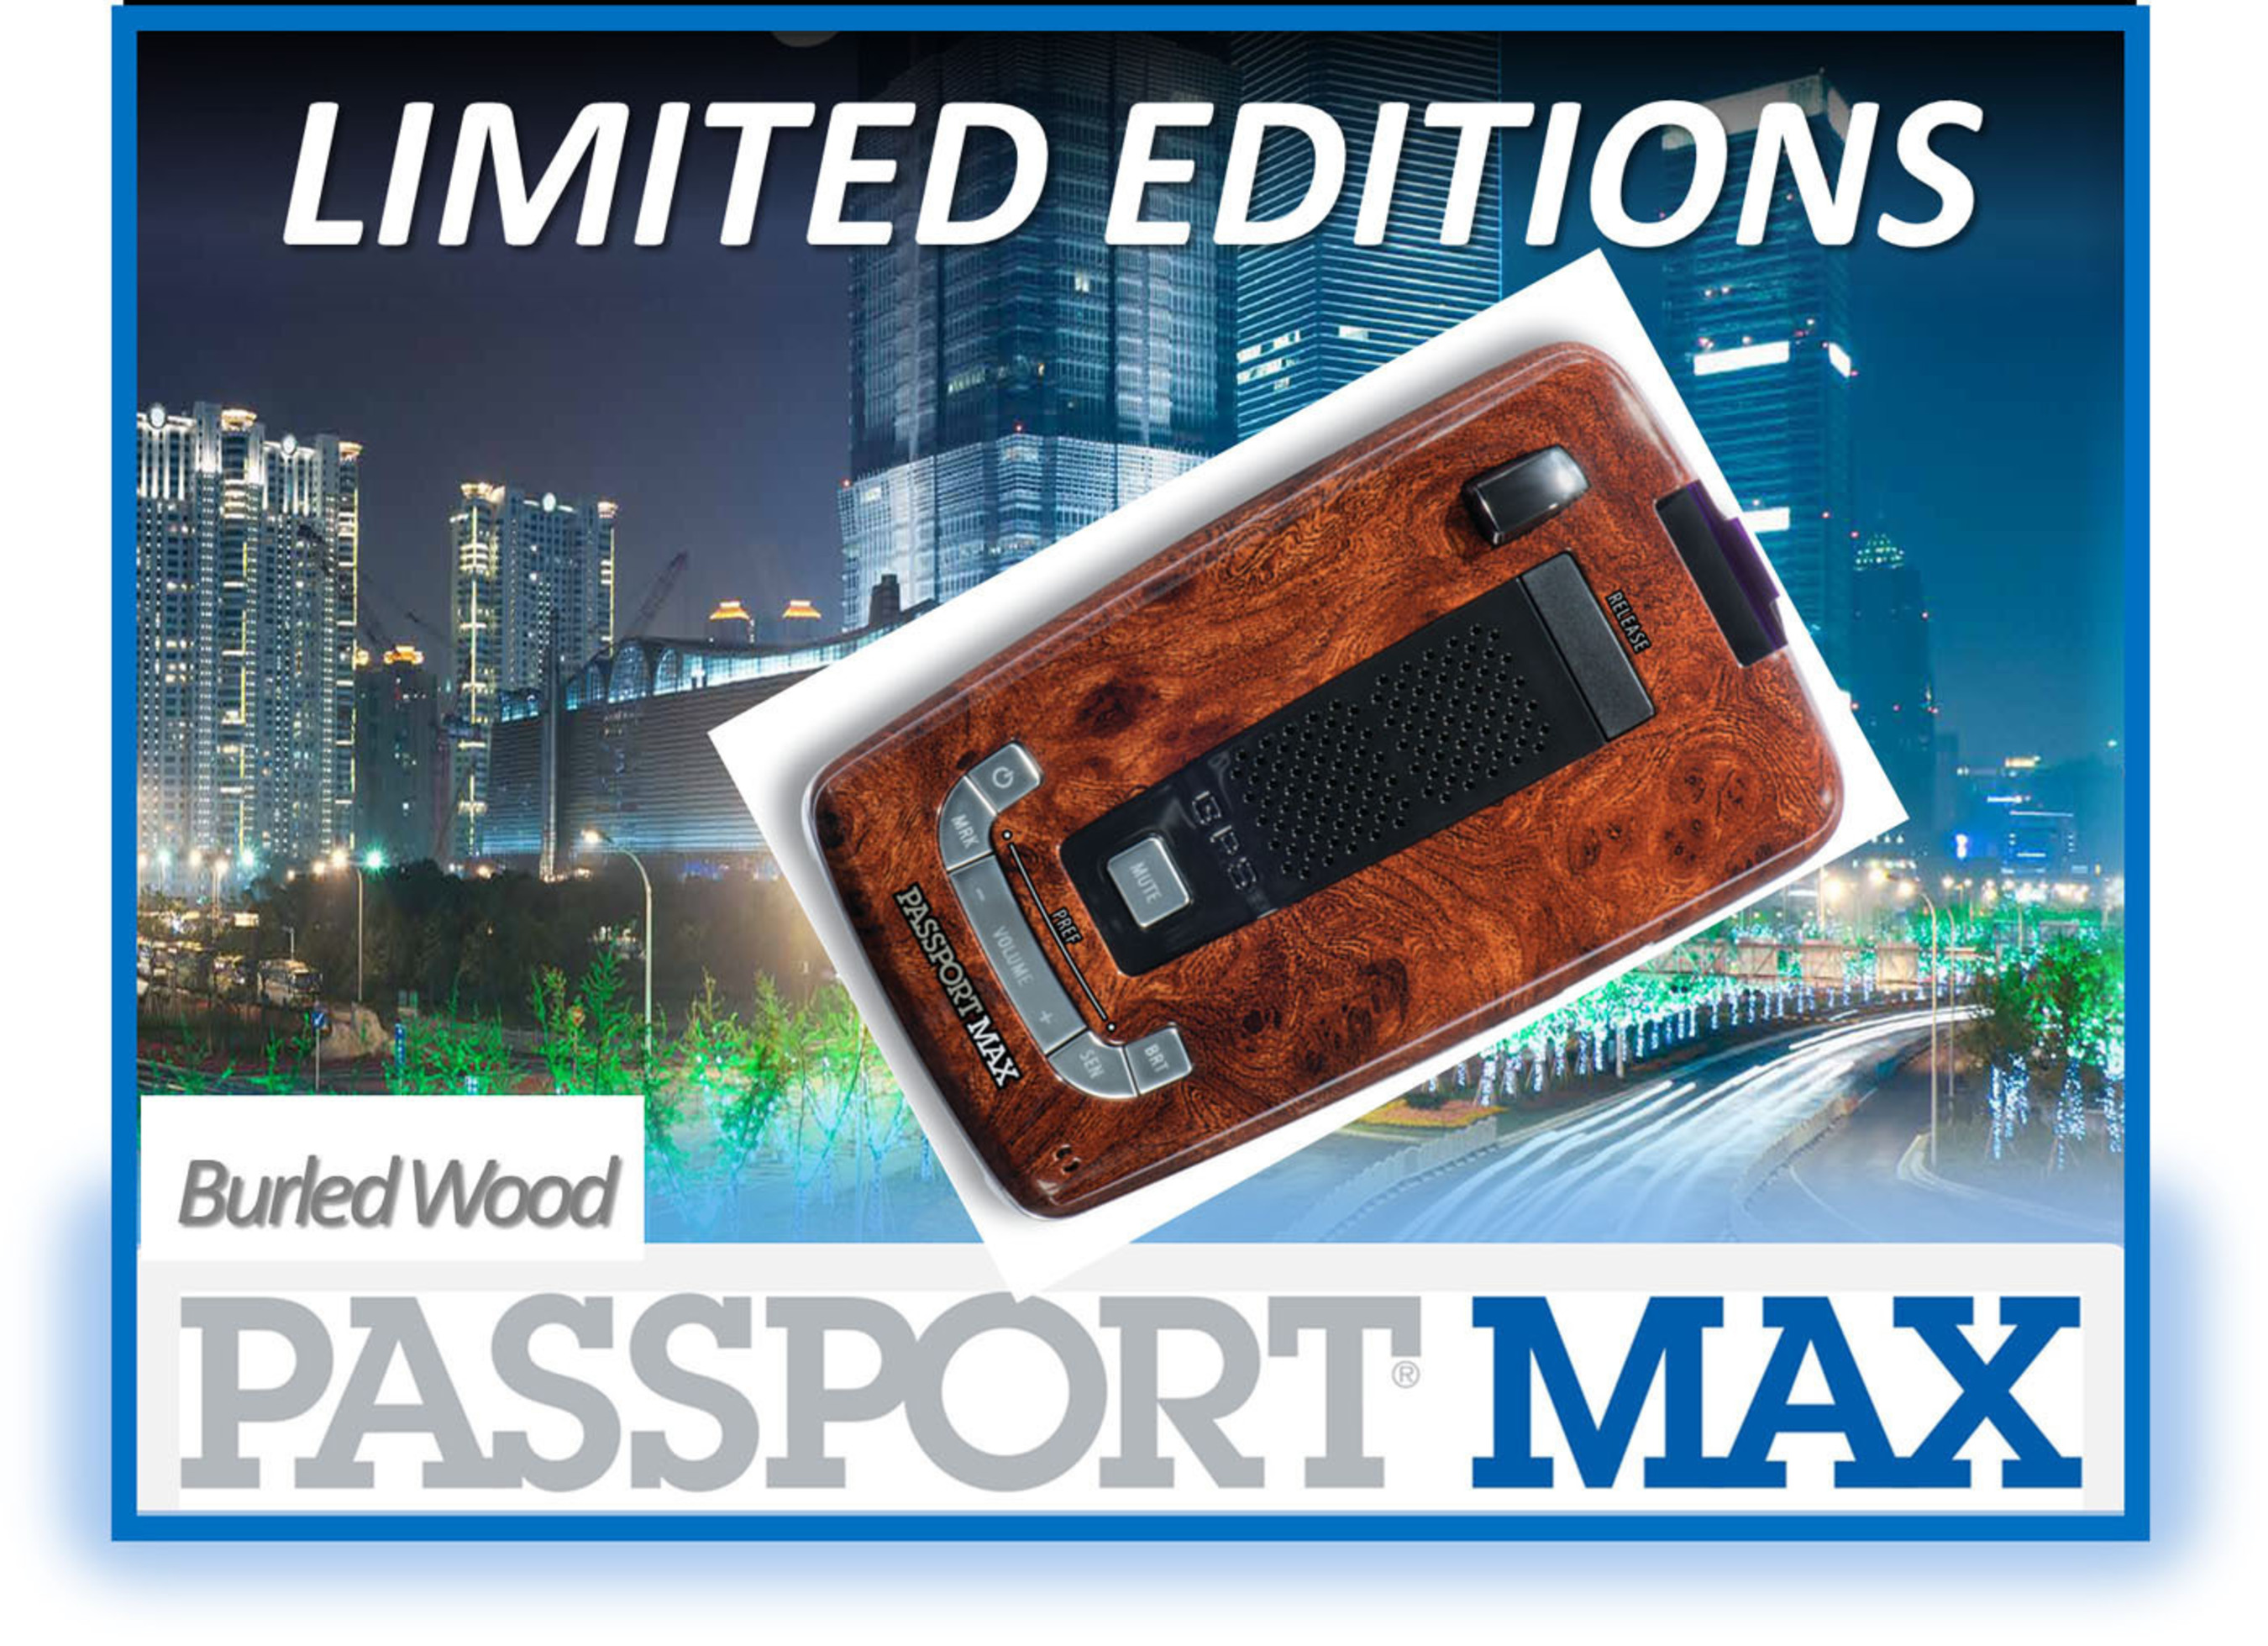 PASSPORT Max Limited Edition Burled Wood.  (PRNewsFoto/ESCORT Inc.)